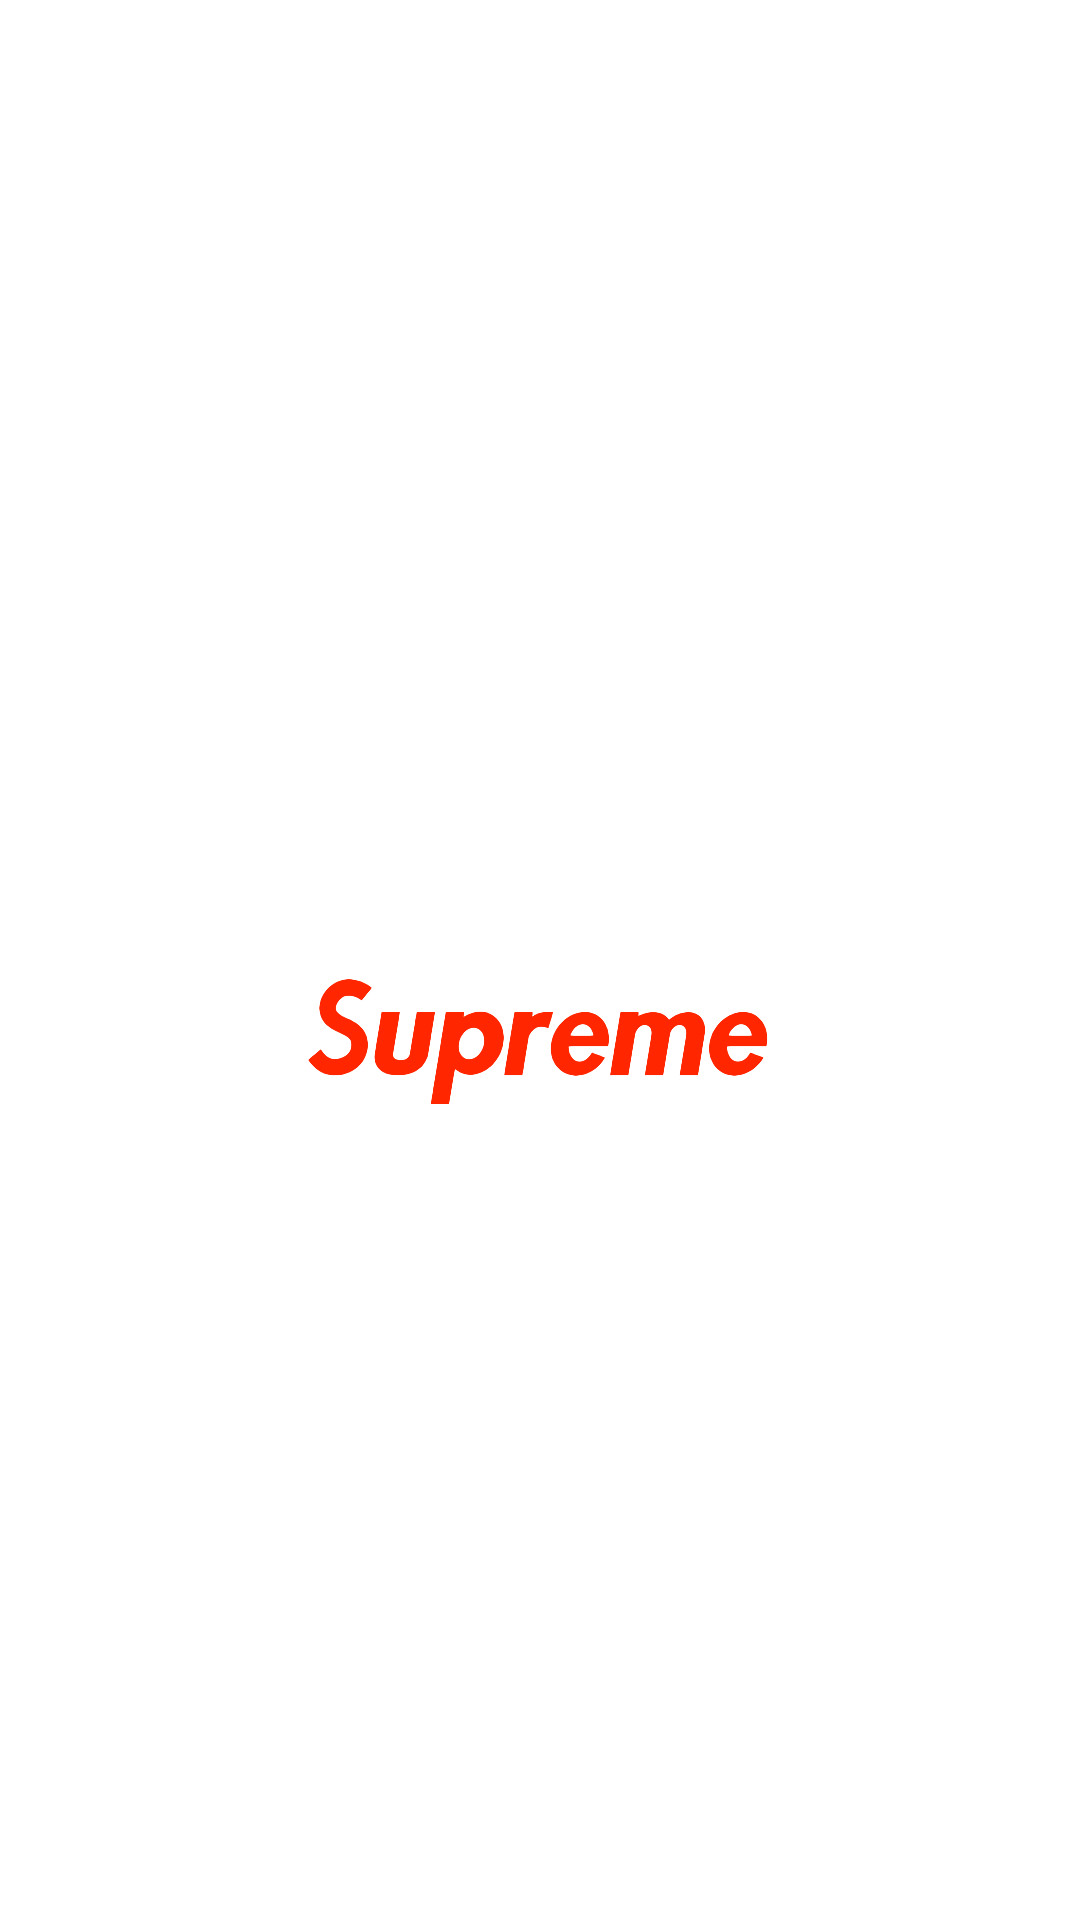 supreme10 - 23 Supreme HQ Smartphone Wallpaper Collection